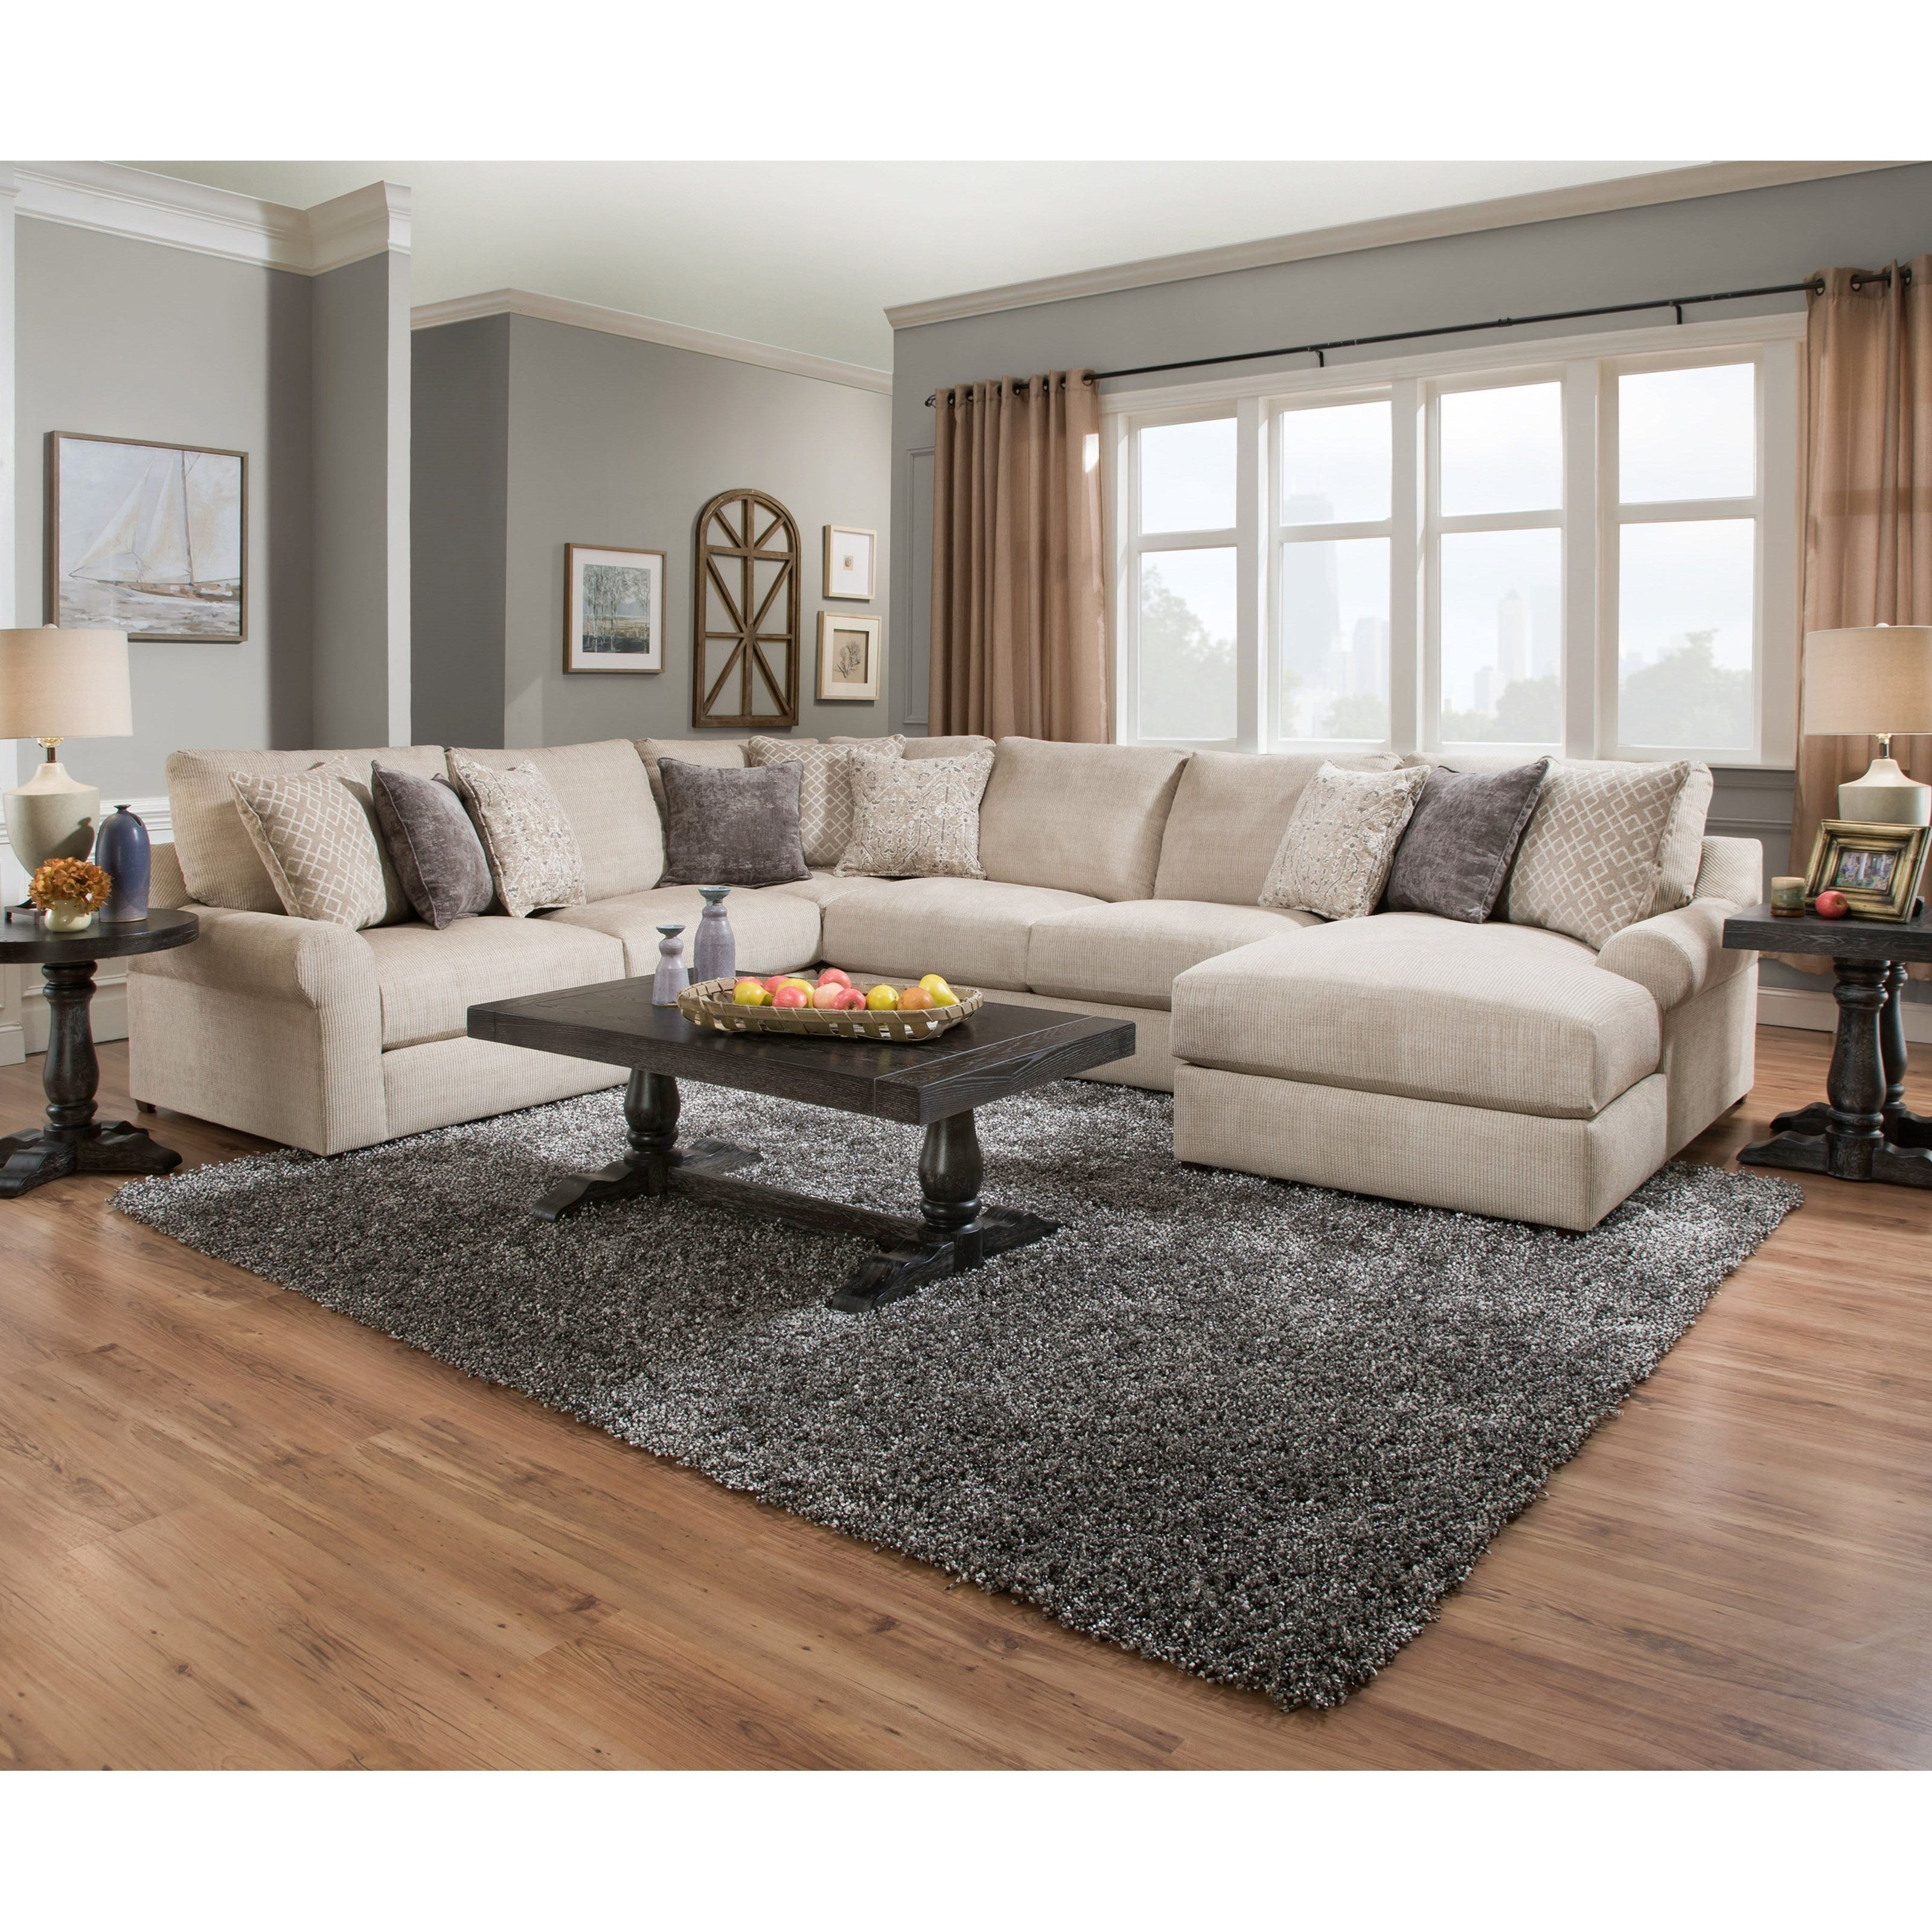 Lifestyle Furniture | Clovis Furniture & Mattress Store | Furniture Stores